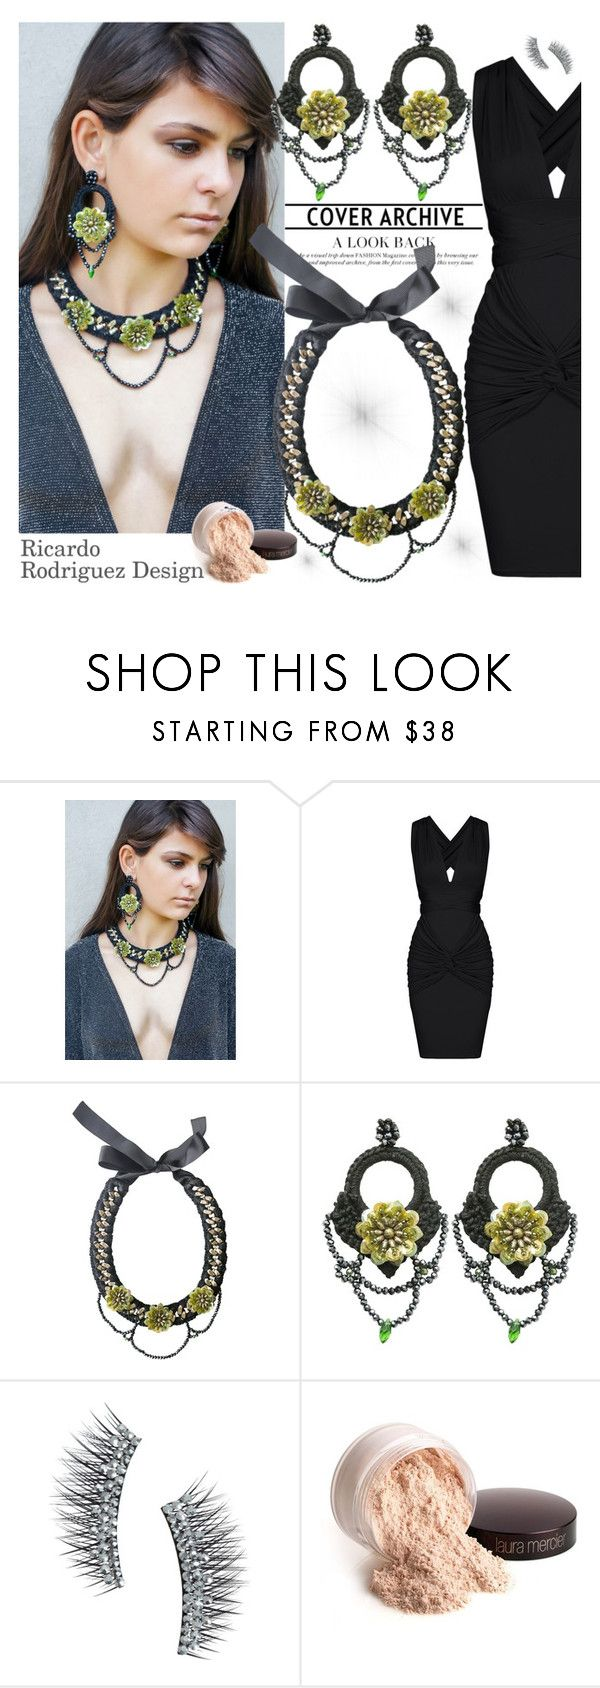 """""""Ricardo Rodriguez Design"""" by gaby-mil ❤ liked on Polyvore featuring Kre-at Beauty, Laura Mercier, jewelry and ricardorodriguezdesign"""